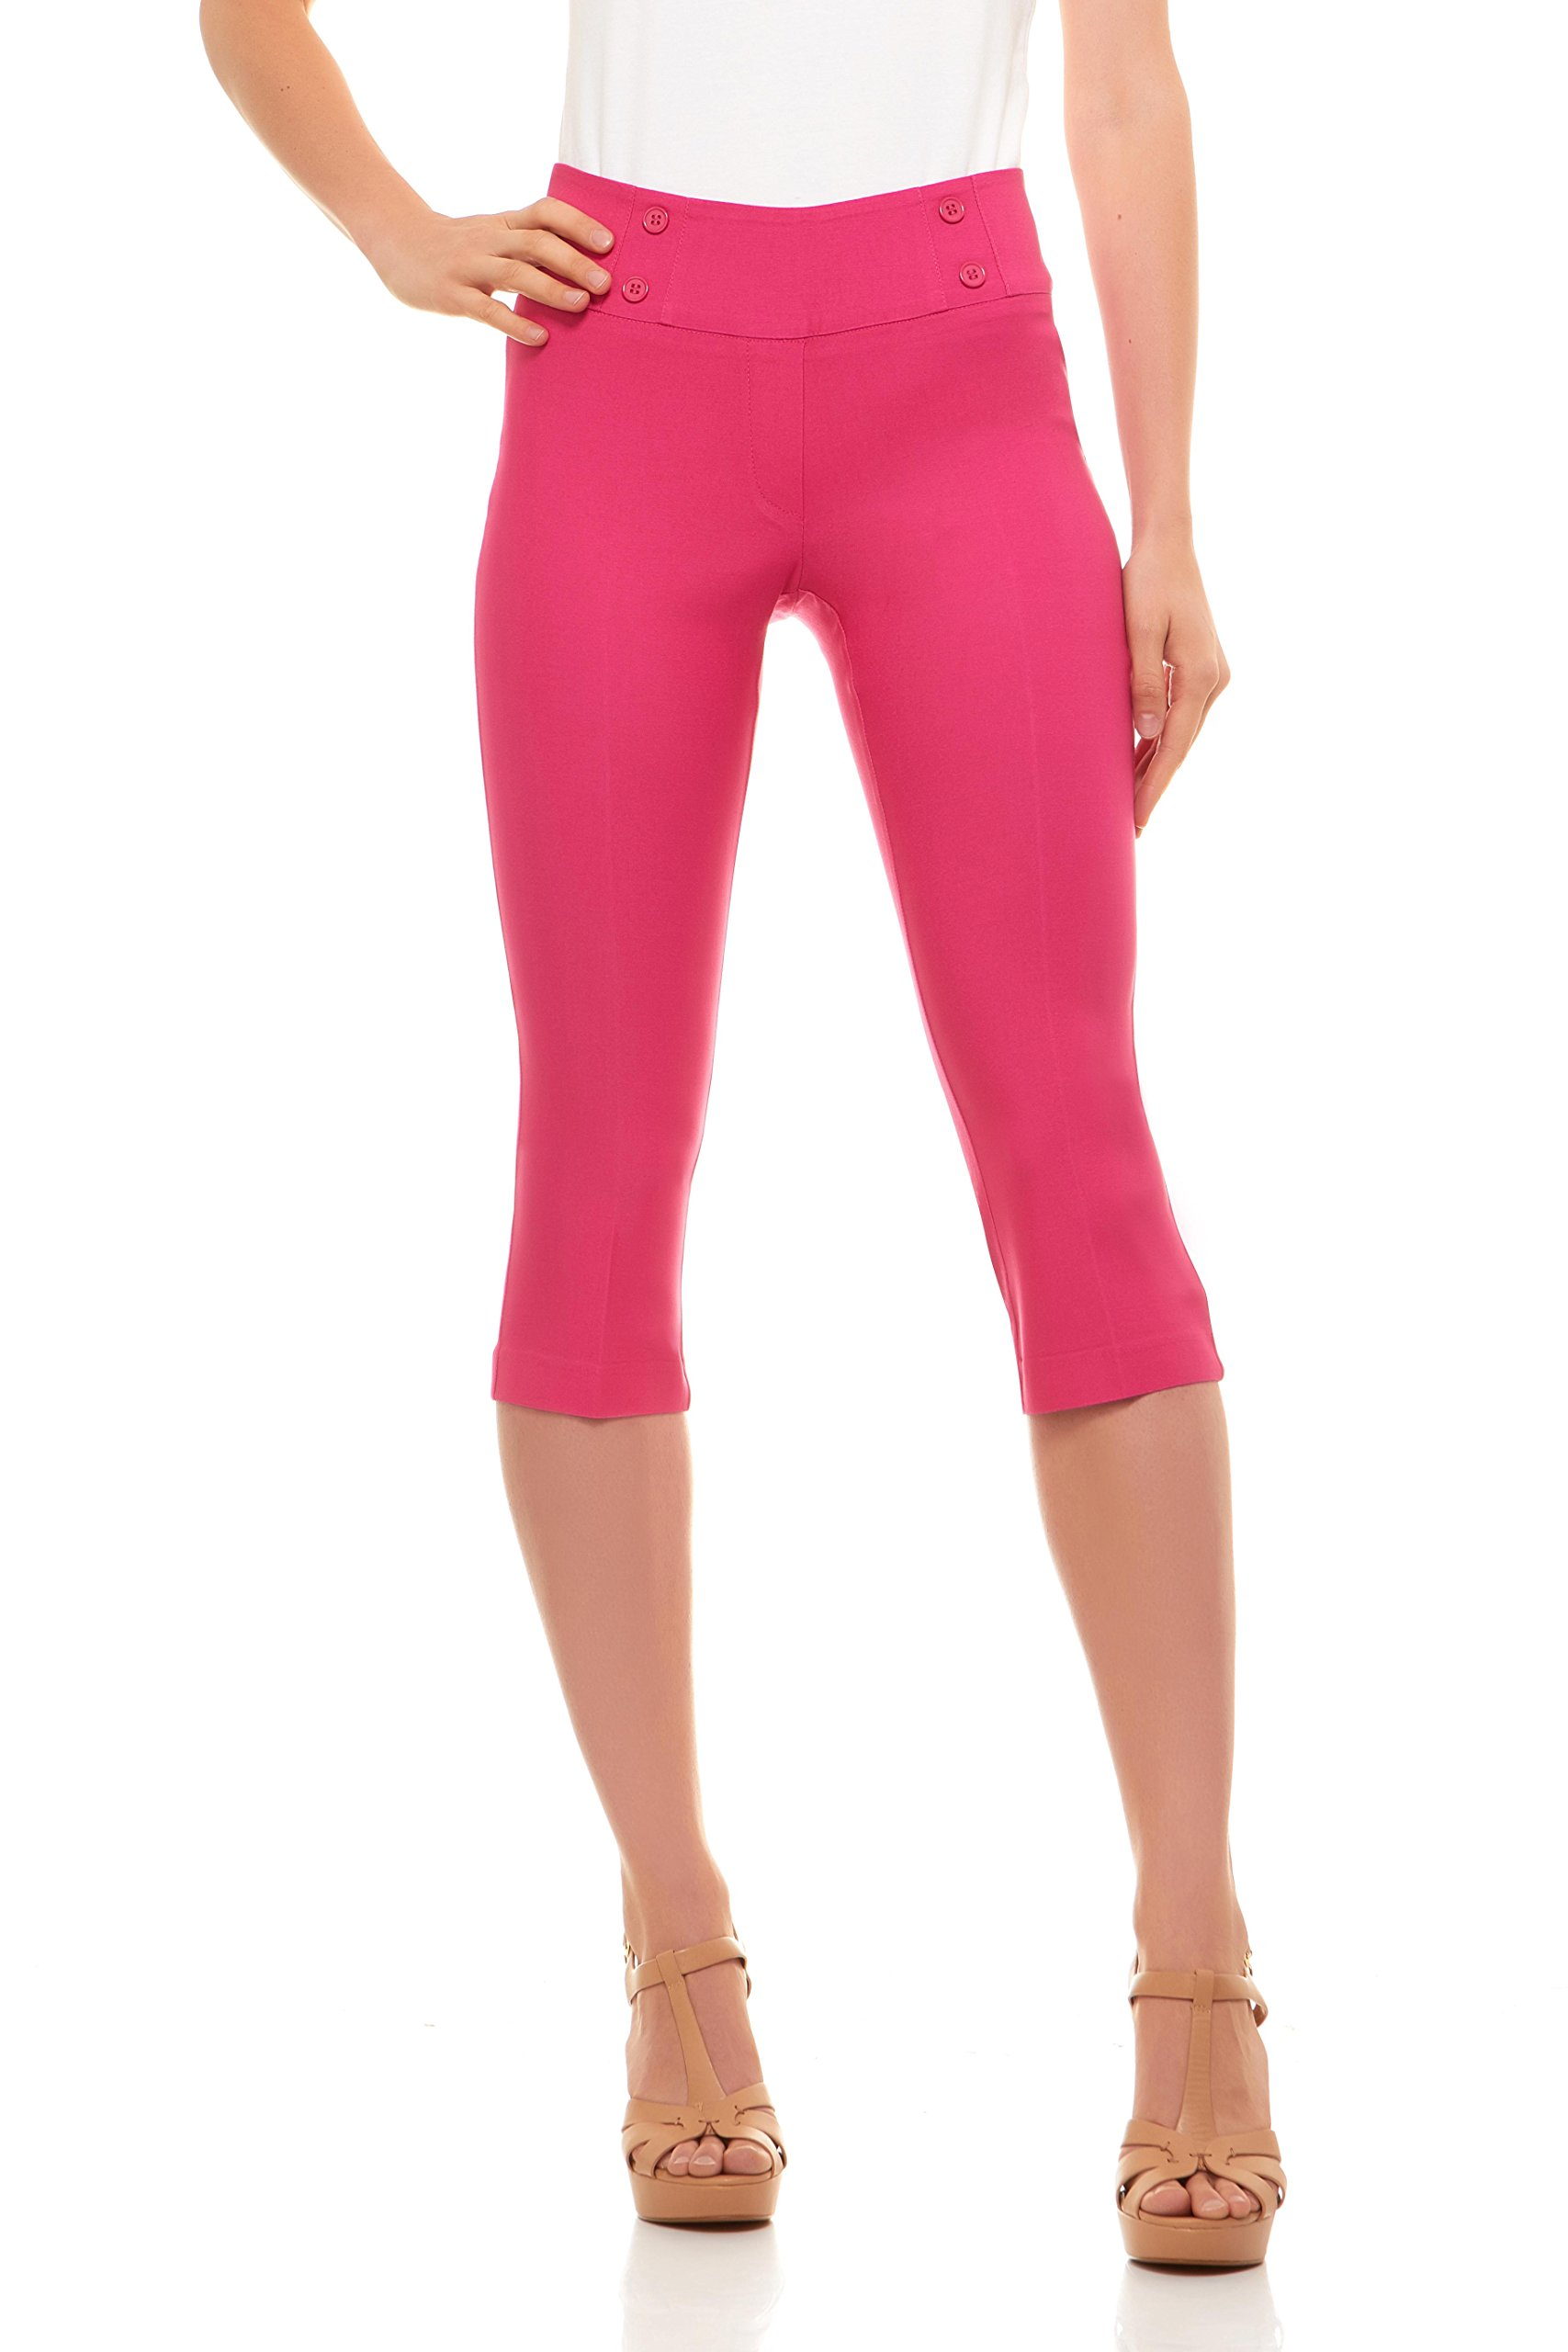 Velucci Womens Classic Fit Capri Pants - Comfortable Pull On Style With Detailed Design, Exotic Pink-M by Velucci